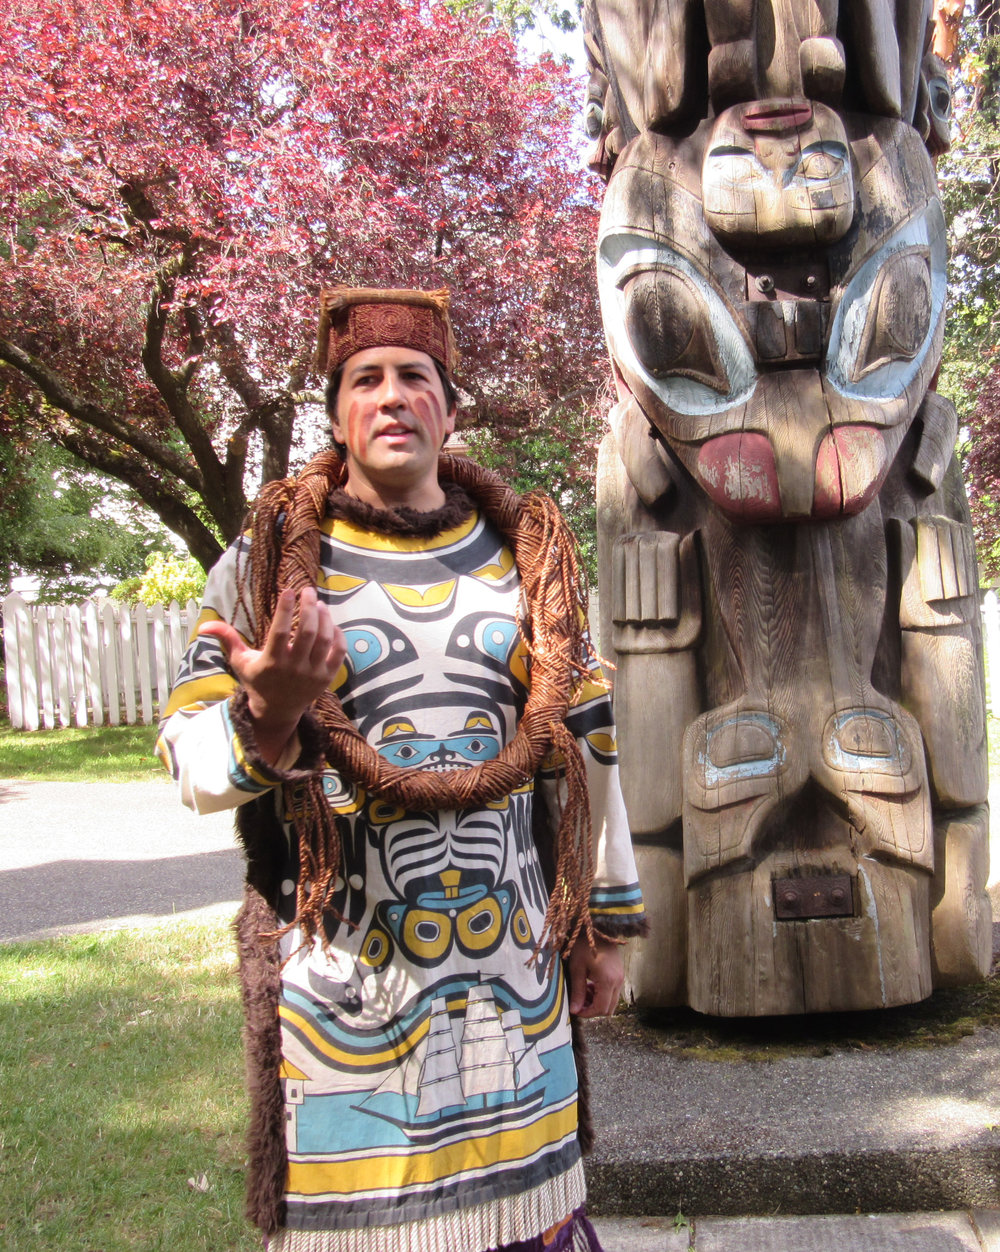 Guided tour of the totems. Photo by trudy chiswell